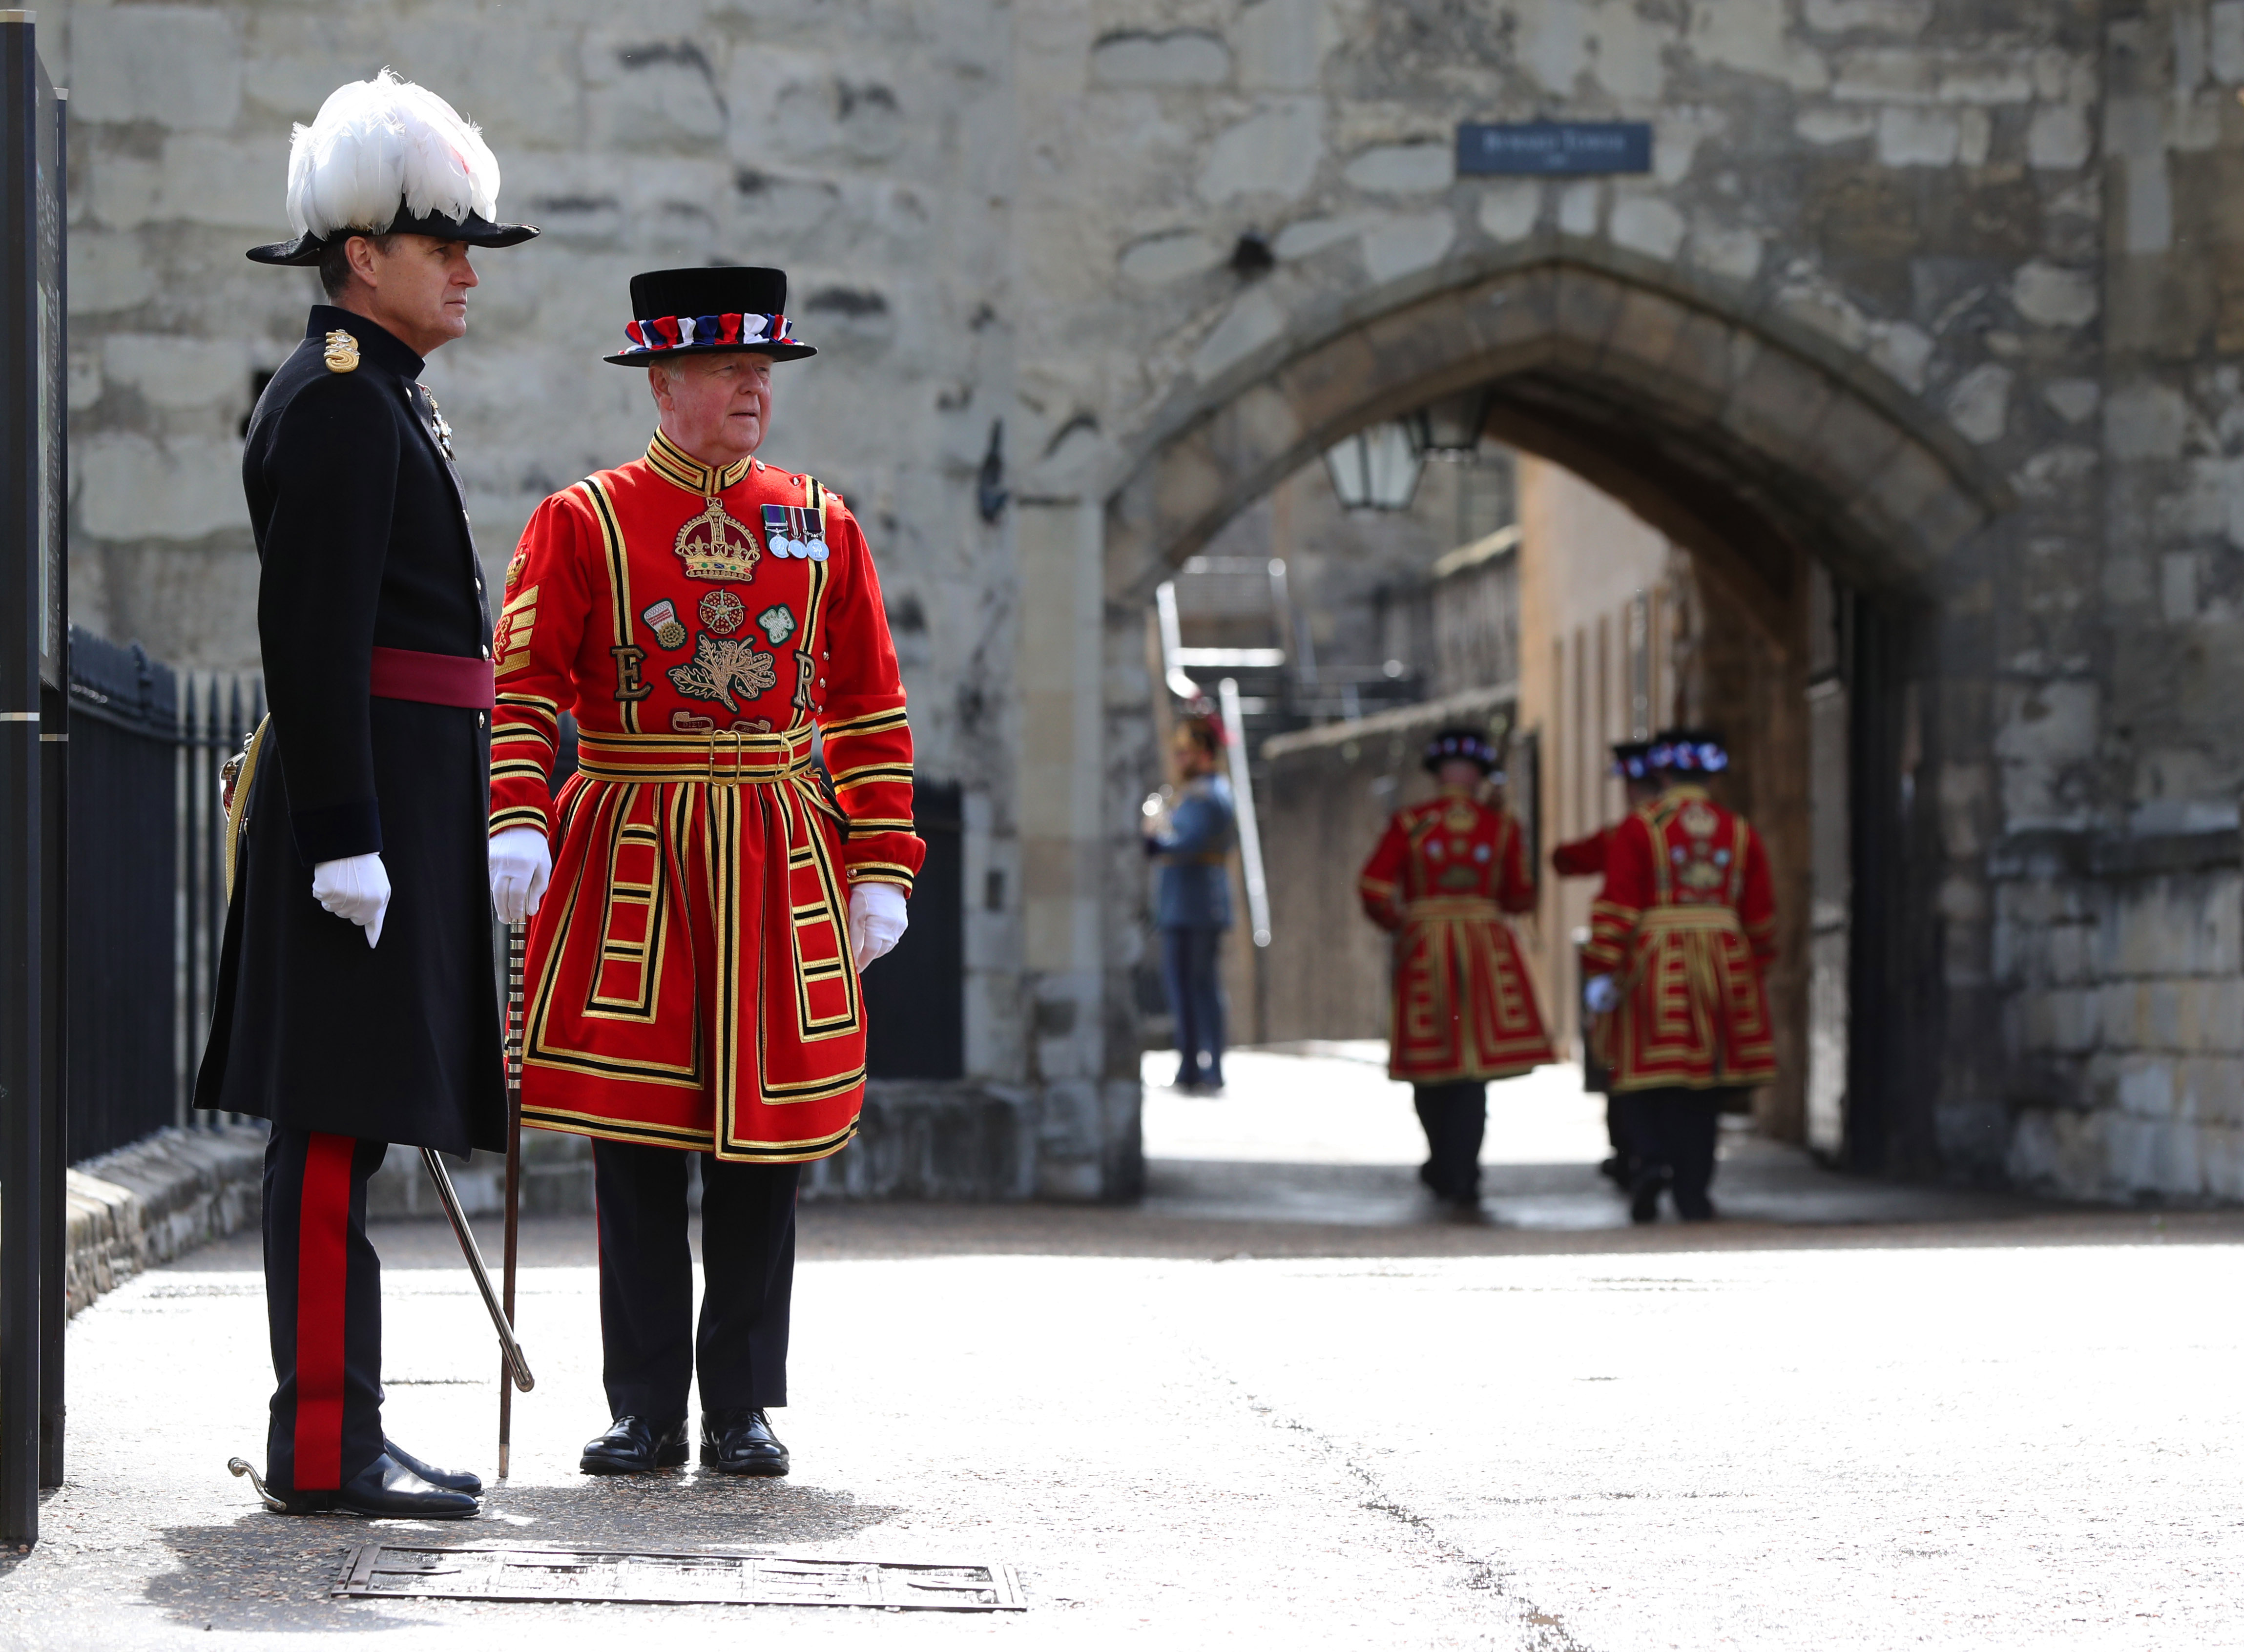 <p>Governor of the Tower of London Andrew Jackson (left) waits to greet visitors to the Tower of London, which is reopening amidst the easing of coronavirus restrictions after its longest closure since World War Two. Picture date: Wednesday May 19, 2021.</p>